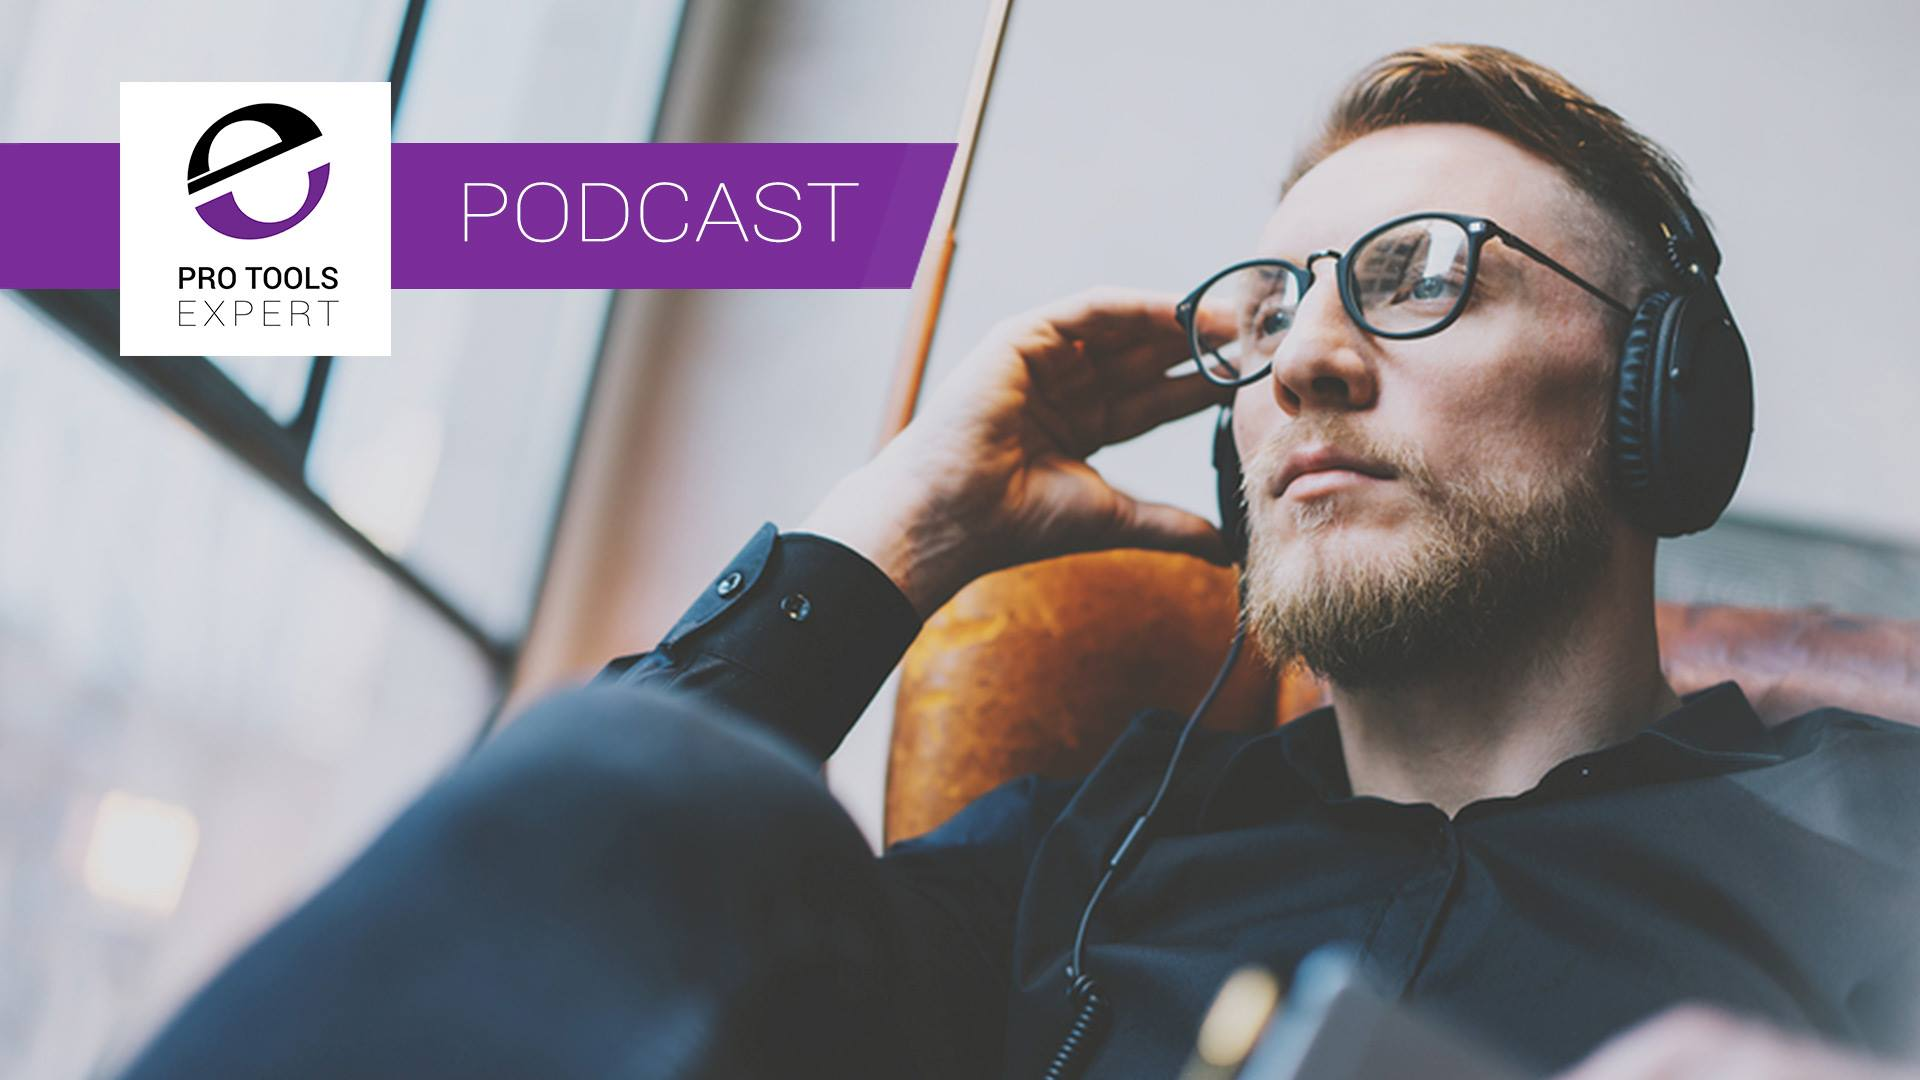 Pro Tools Expert Podcast 250 - Our Hopes And Dreams For 2017